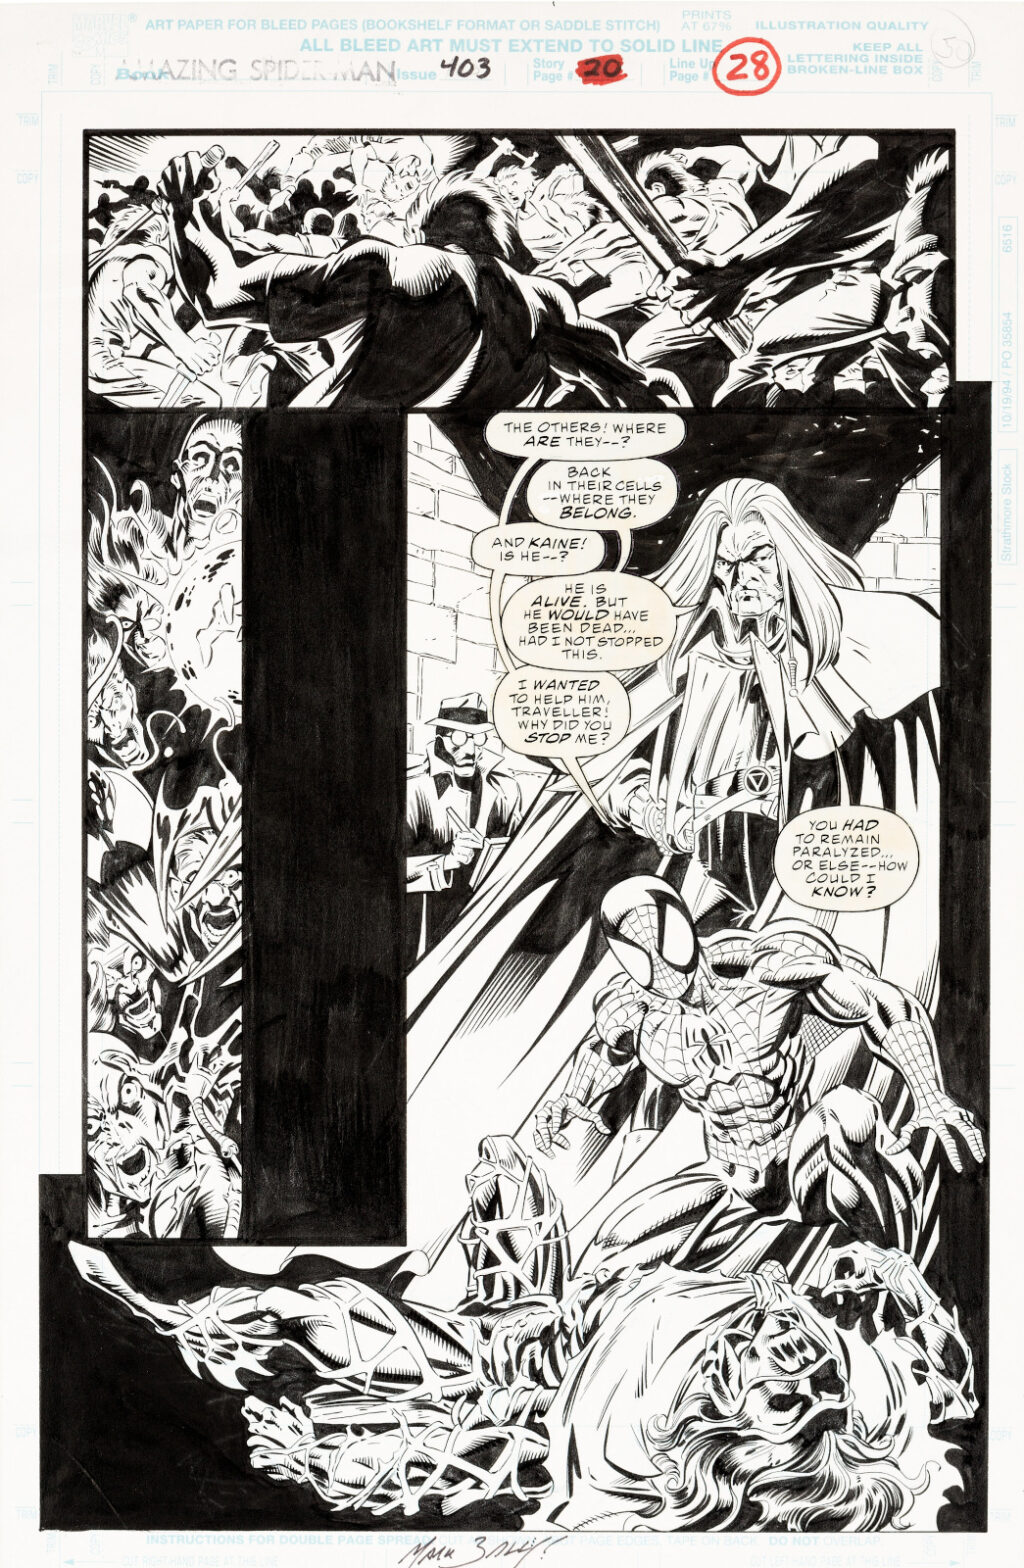 Amazing Spider Man issue 403 page 28 by Mark Bagley and Larry Mahlstedt